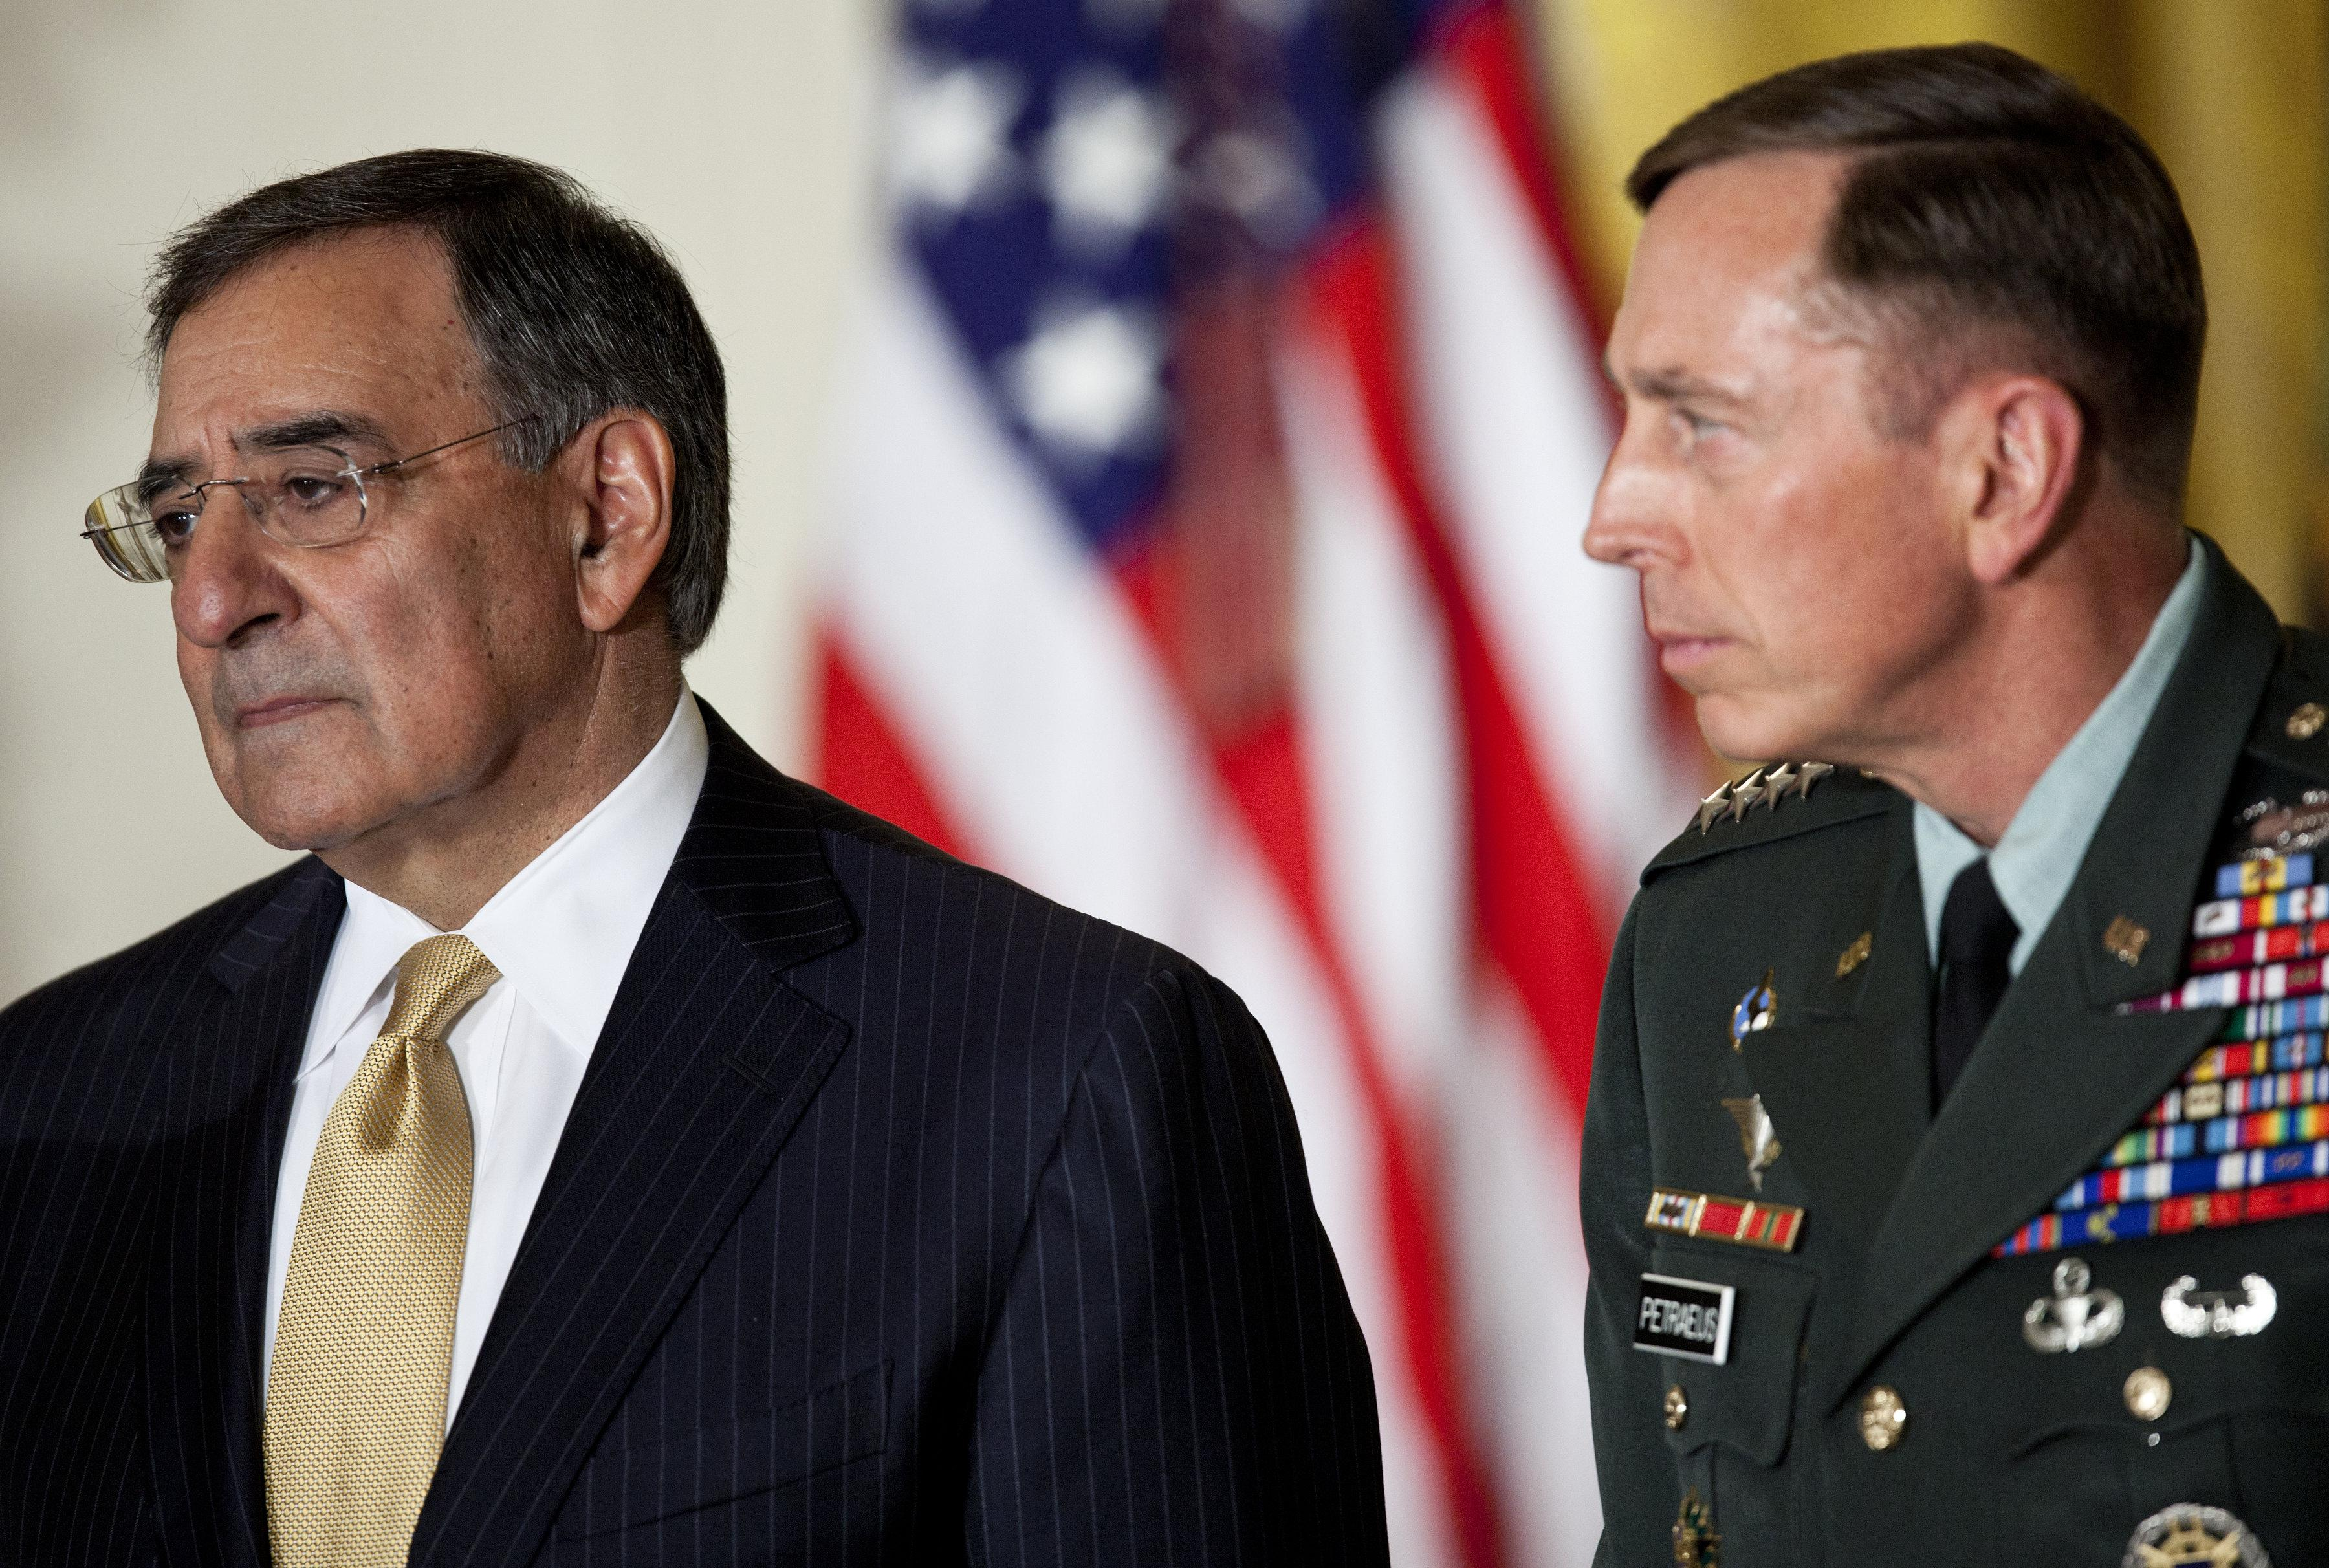 Then director of the Central Intelligence Agency Leon Panetta and Gen. David Petraeus listen during an event in the East Room of the White House.